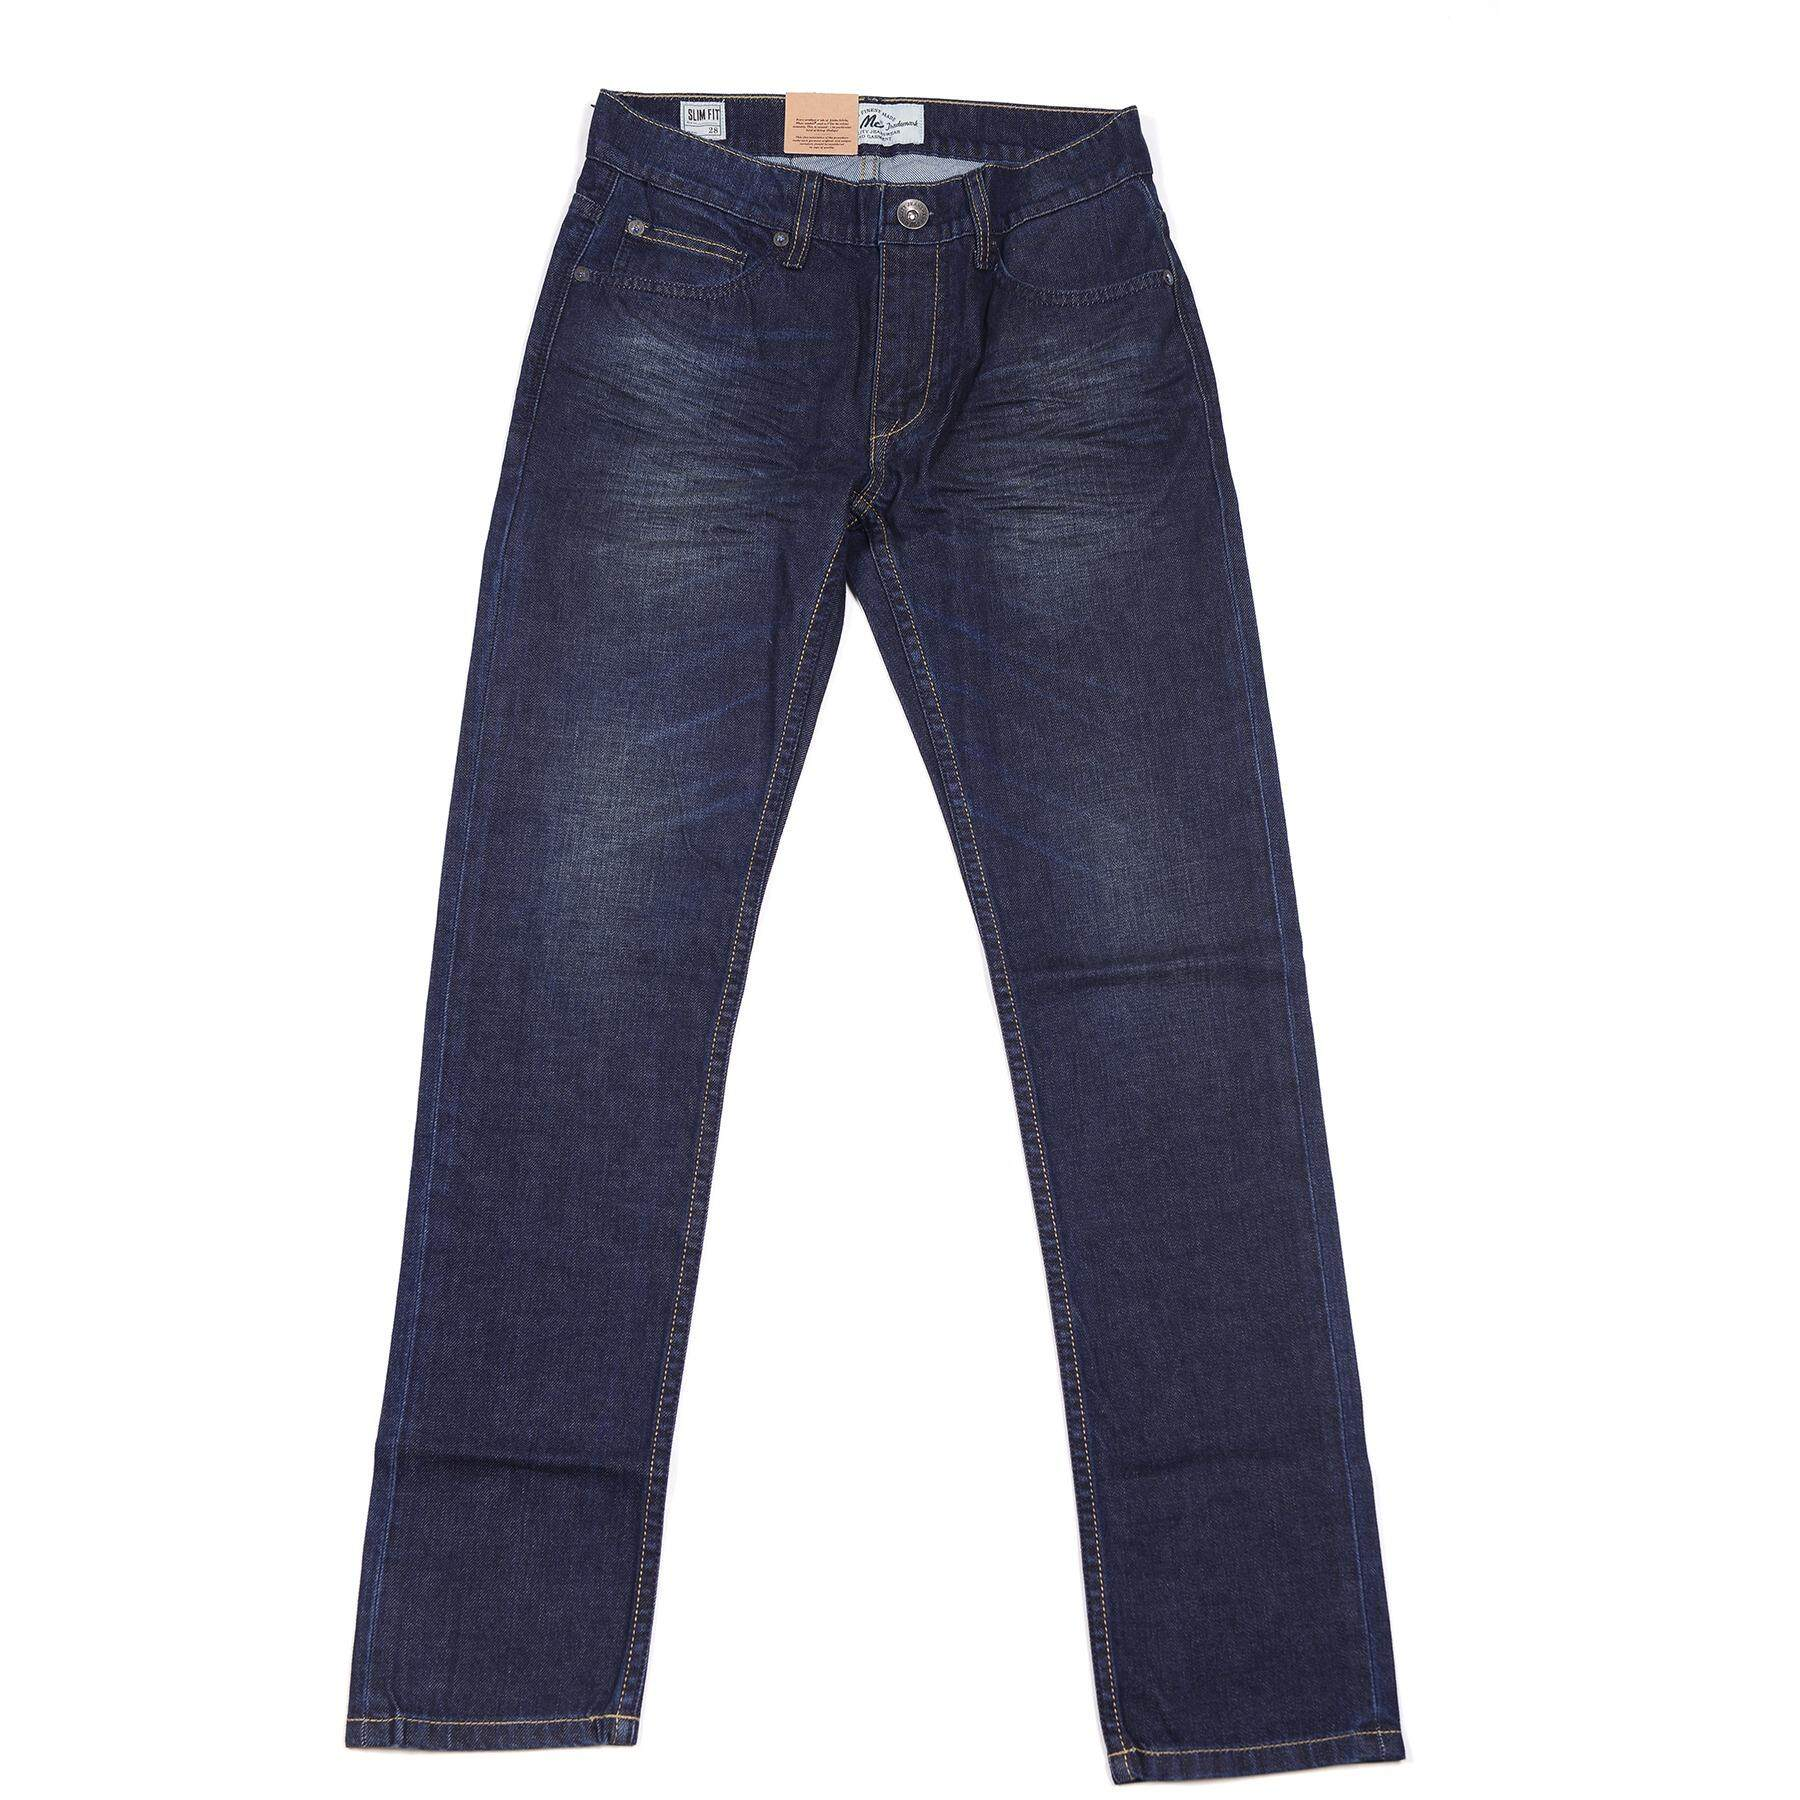 ราคา Mcjeans Slim Fit Jeans Mad617100 Blue ใหม่